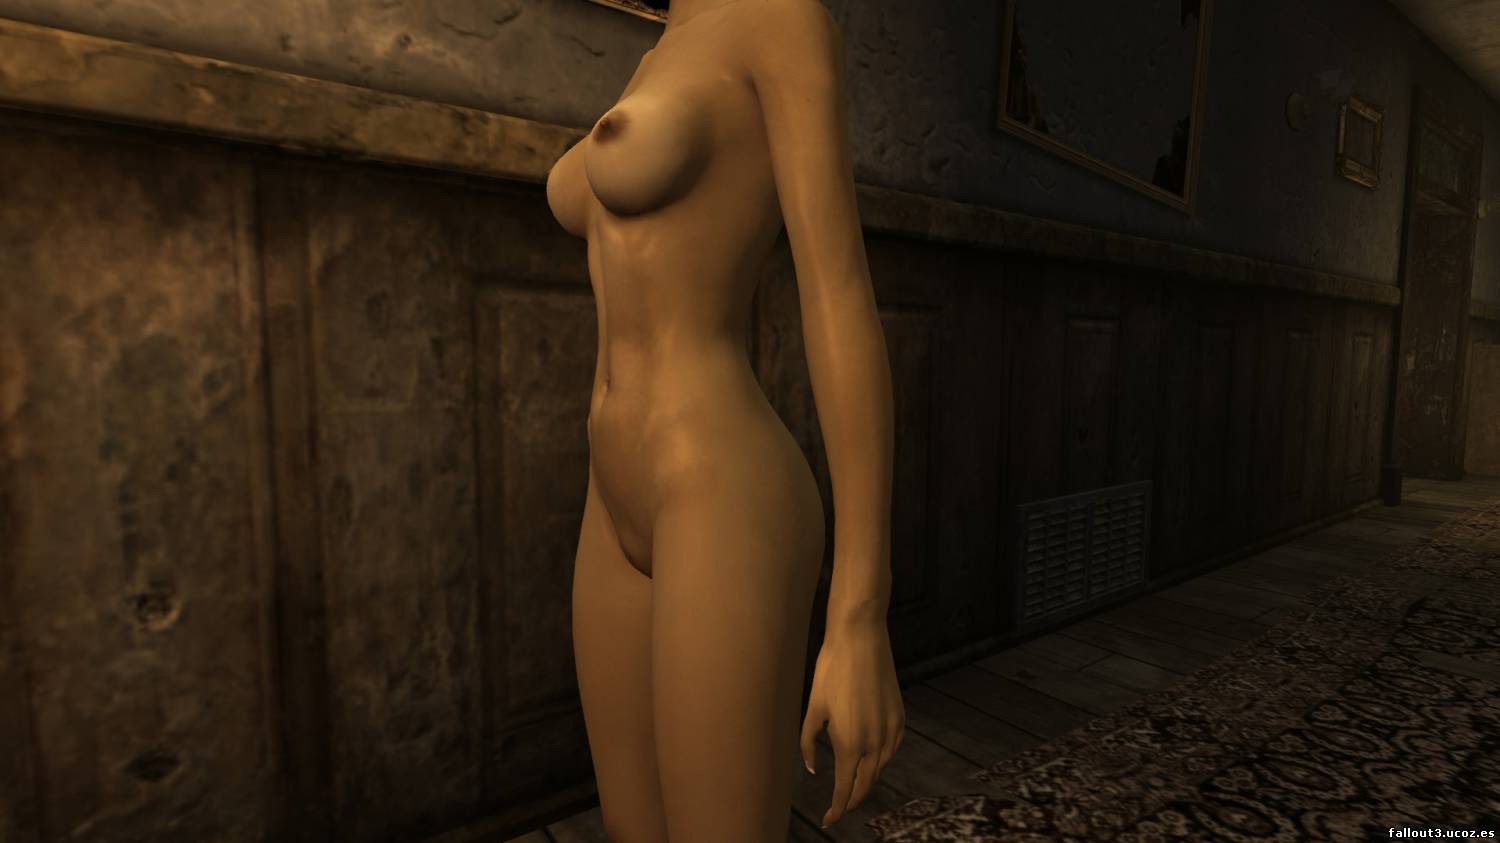 Phrase Fallout new vegas naked girl having sex eventually